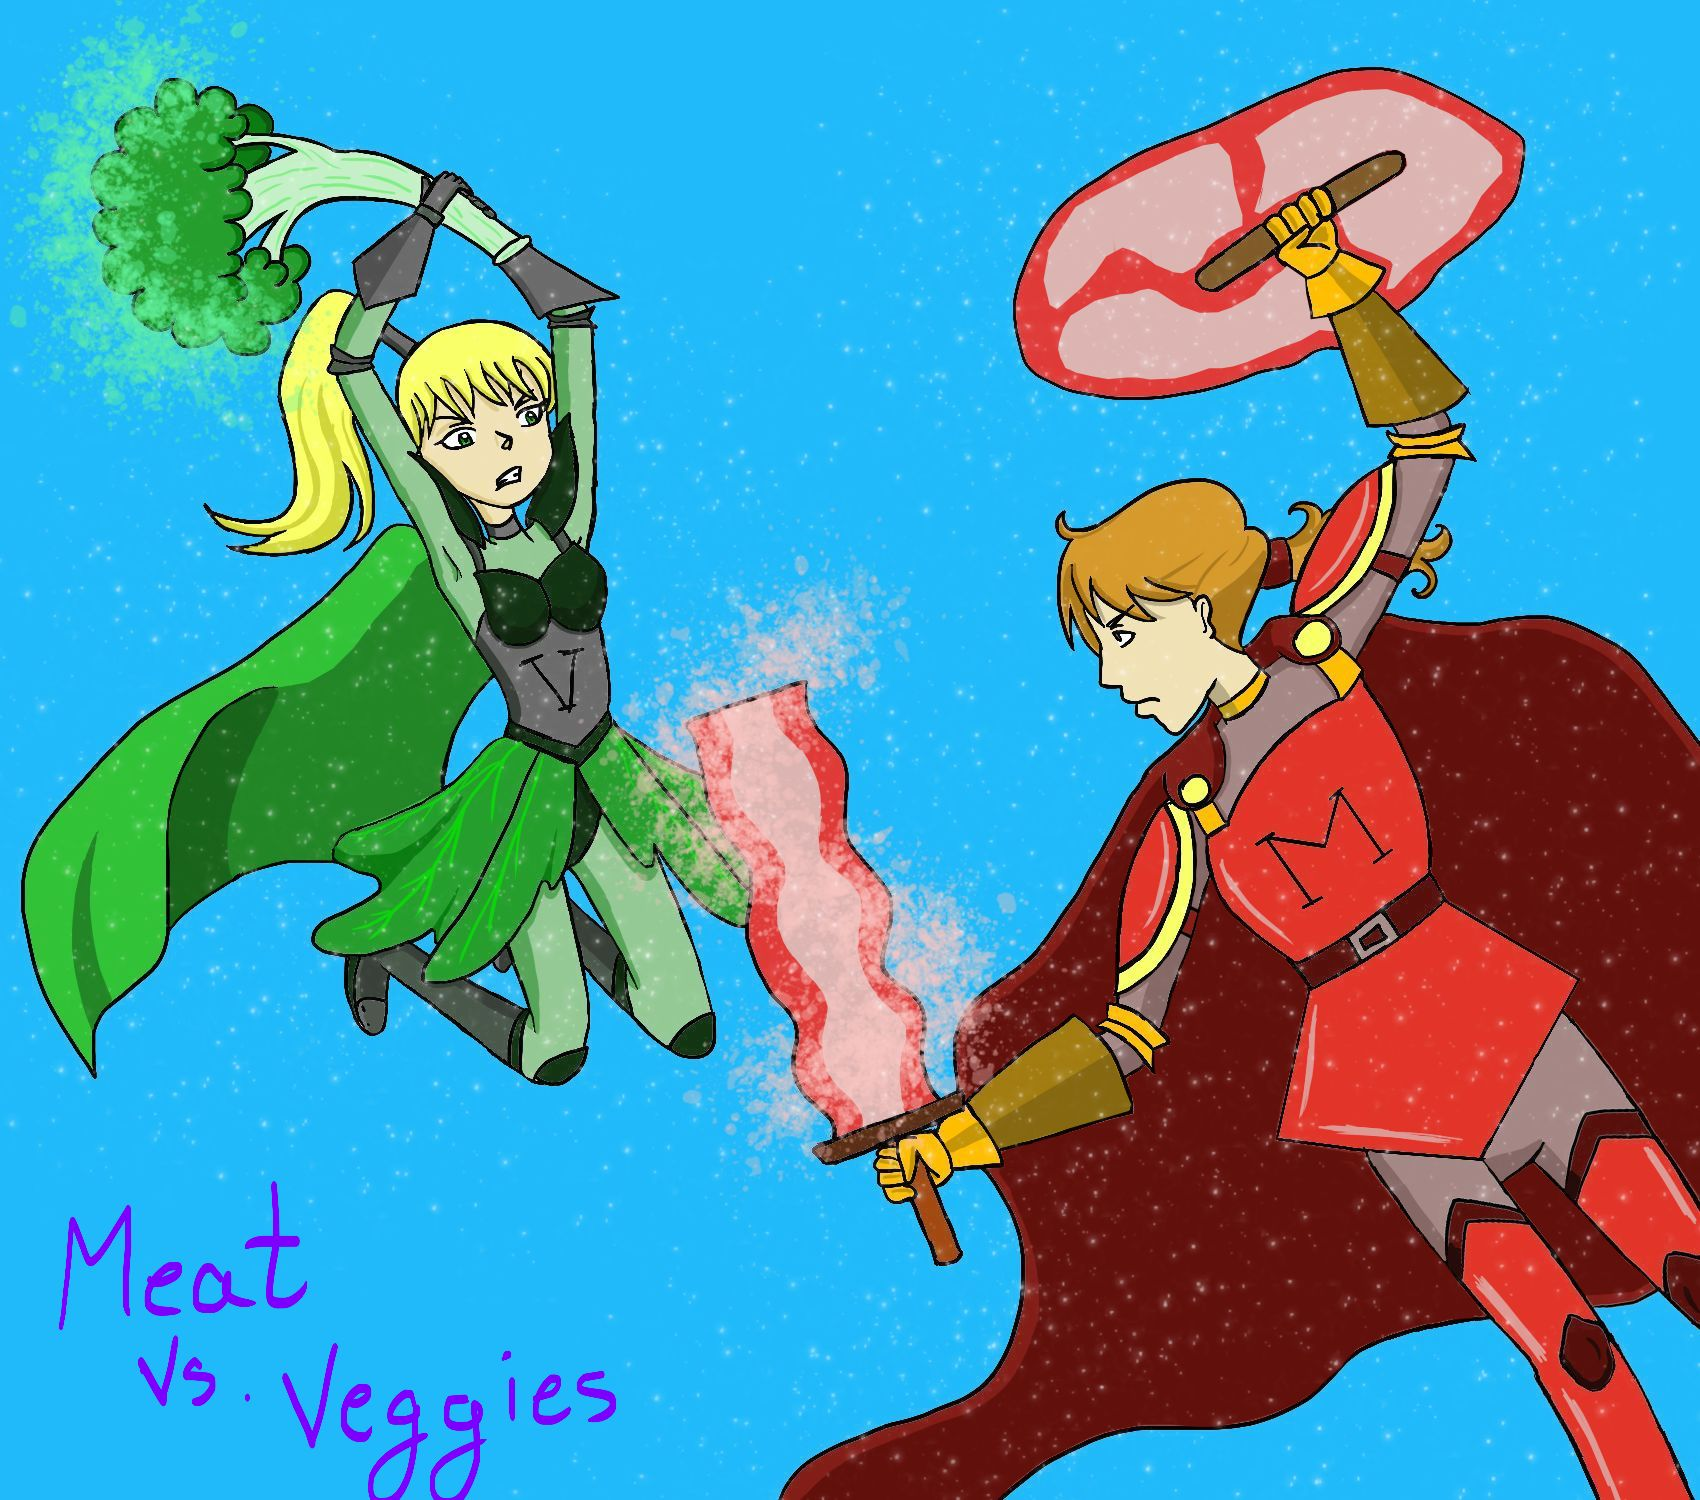 Comic of female dressed in green superhero outfit wielding a broccoli club at a male dressed in red superhero cape with bacon sword and ham shield.